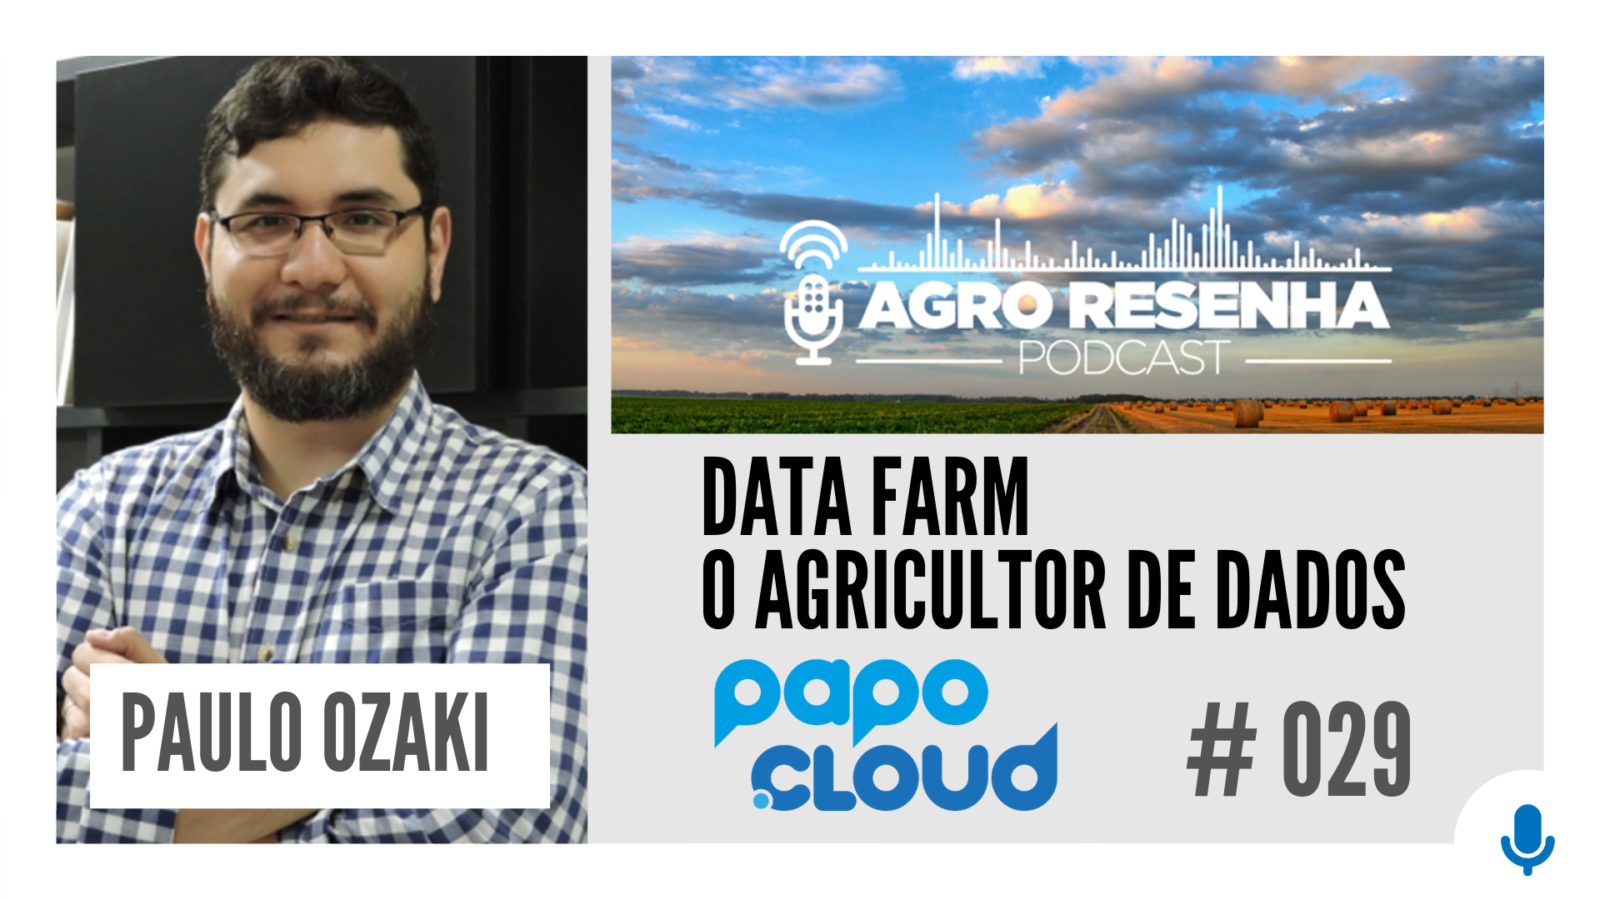 Papo Cloud 029 - DATA FARM O Agricultor de DADOS